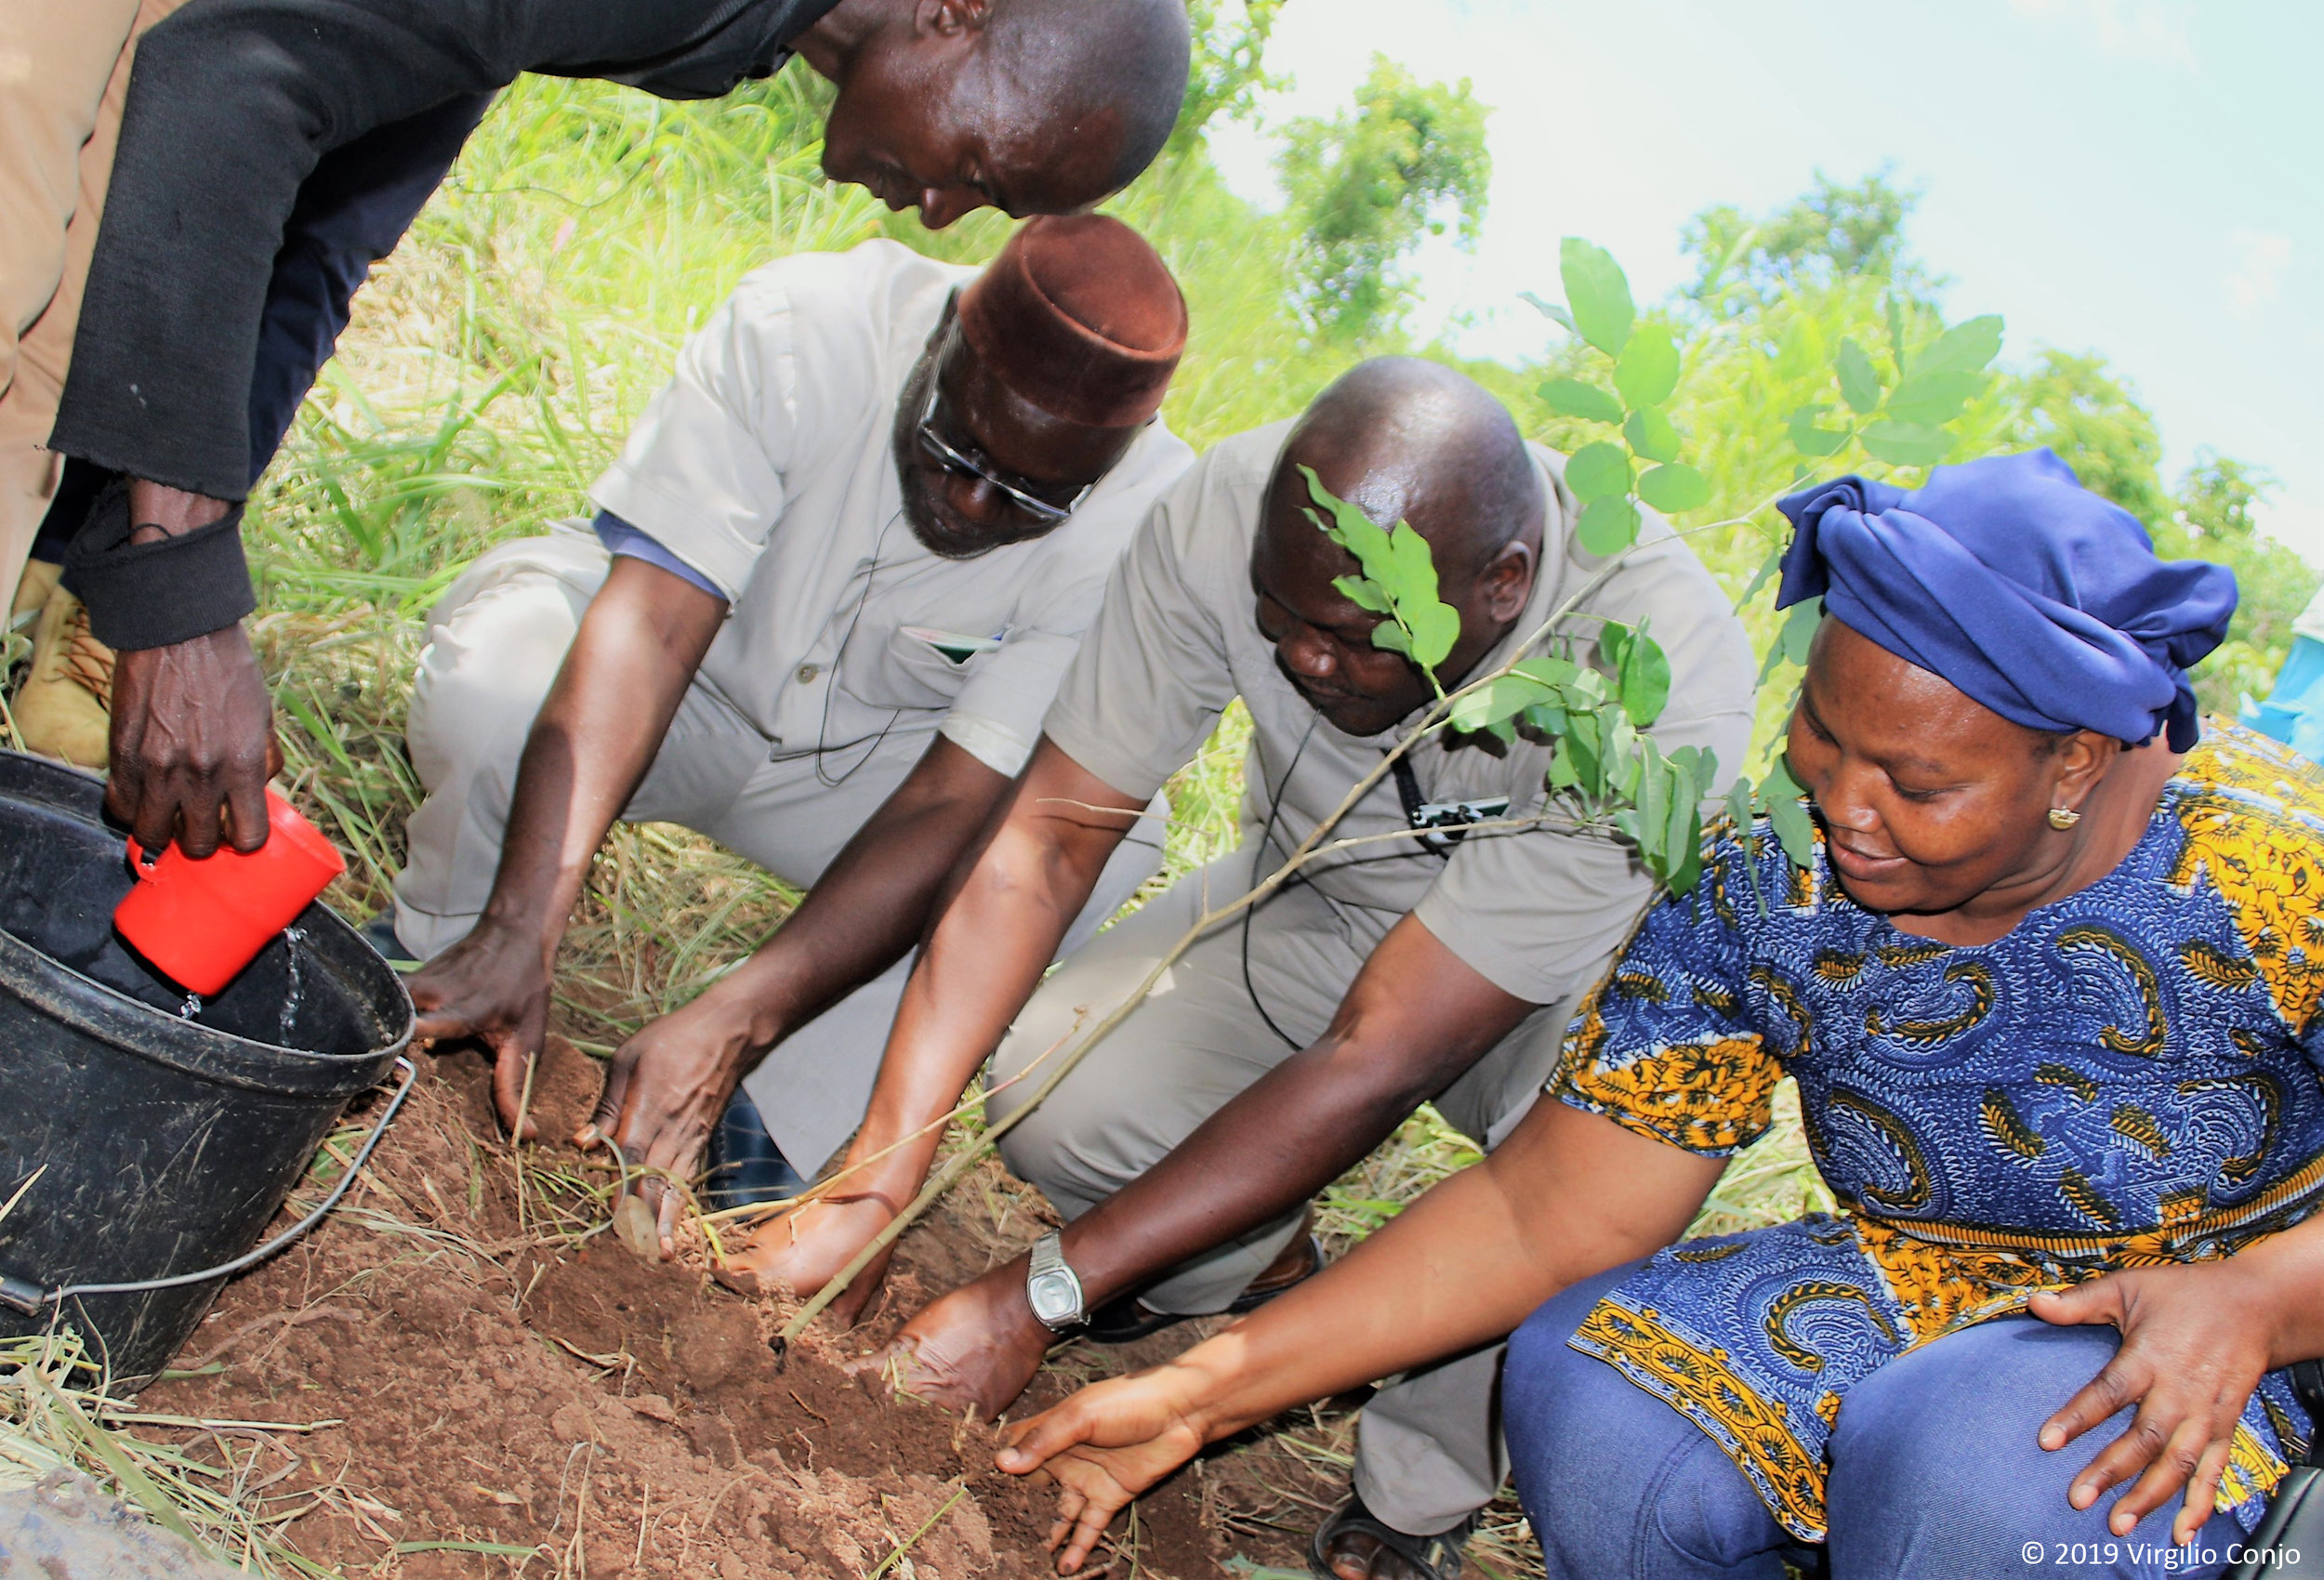 DGM Burkina Faso representatives water their newly planted tree in the Canda community of Gorongosa, Mozambique